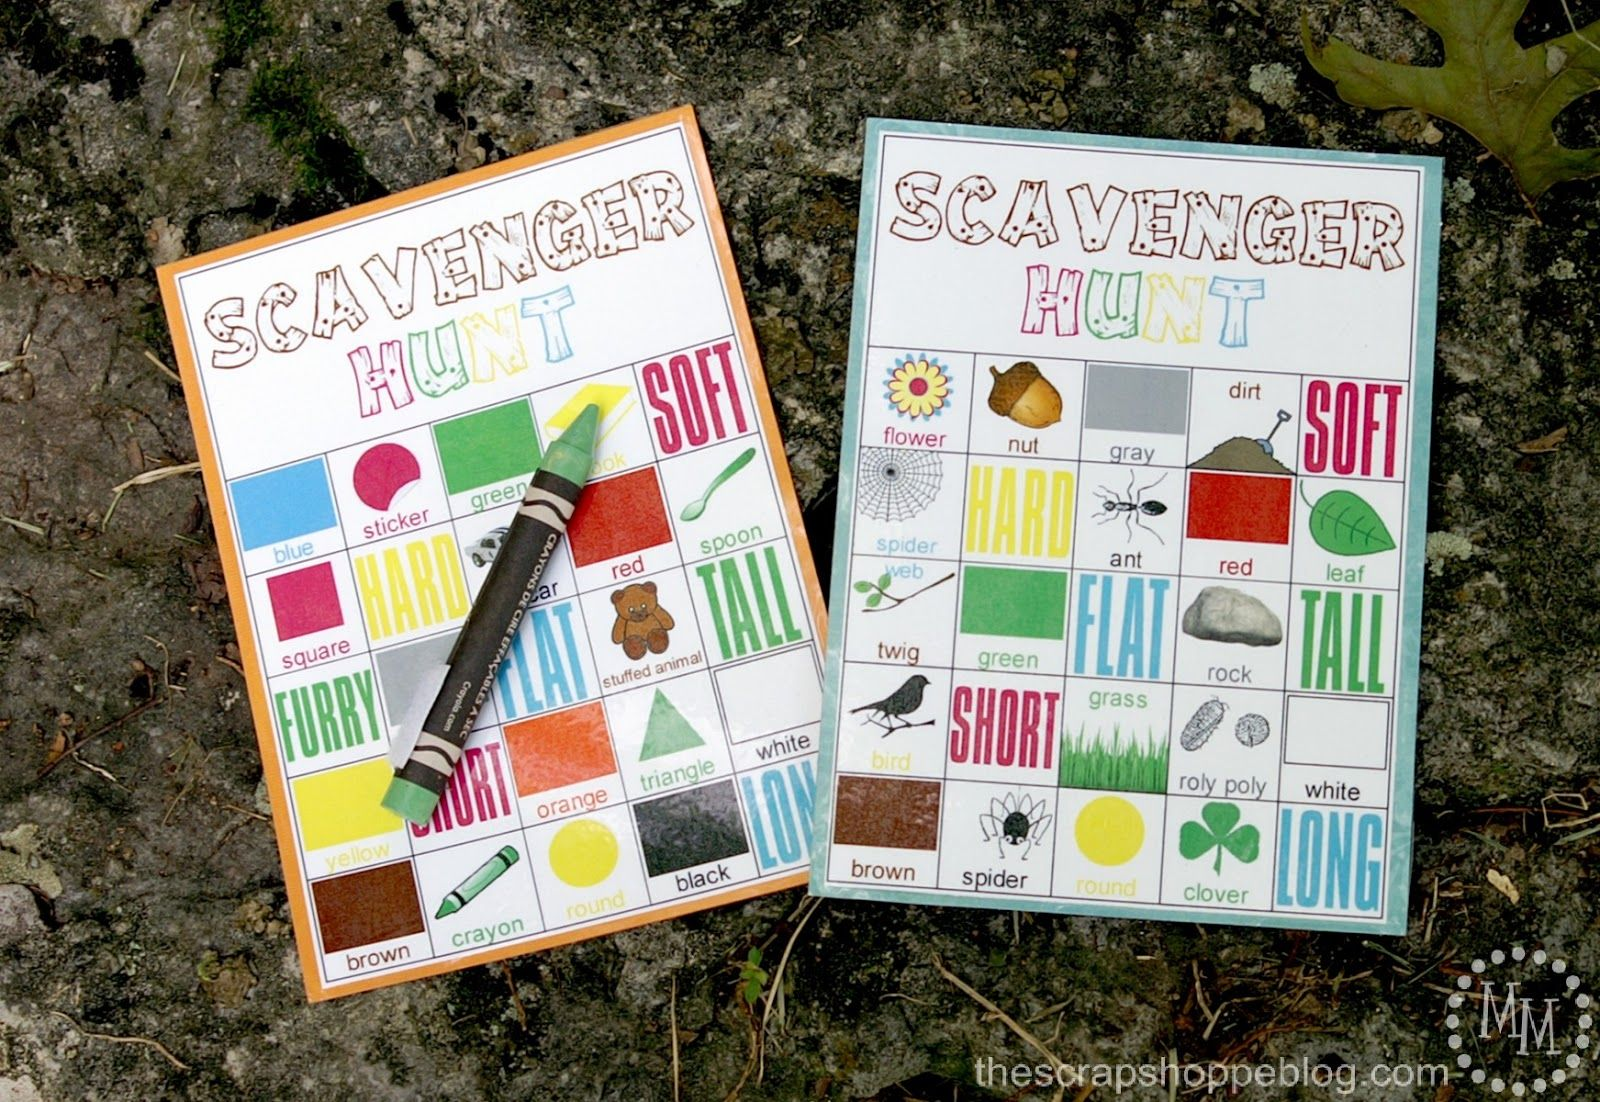 Indoor Camping 101 Here S A Fun Printable From Michele Morales The Scrap Shoppe That